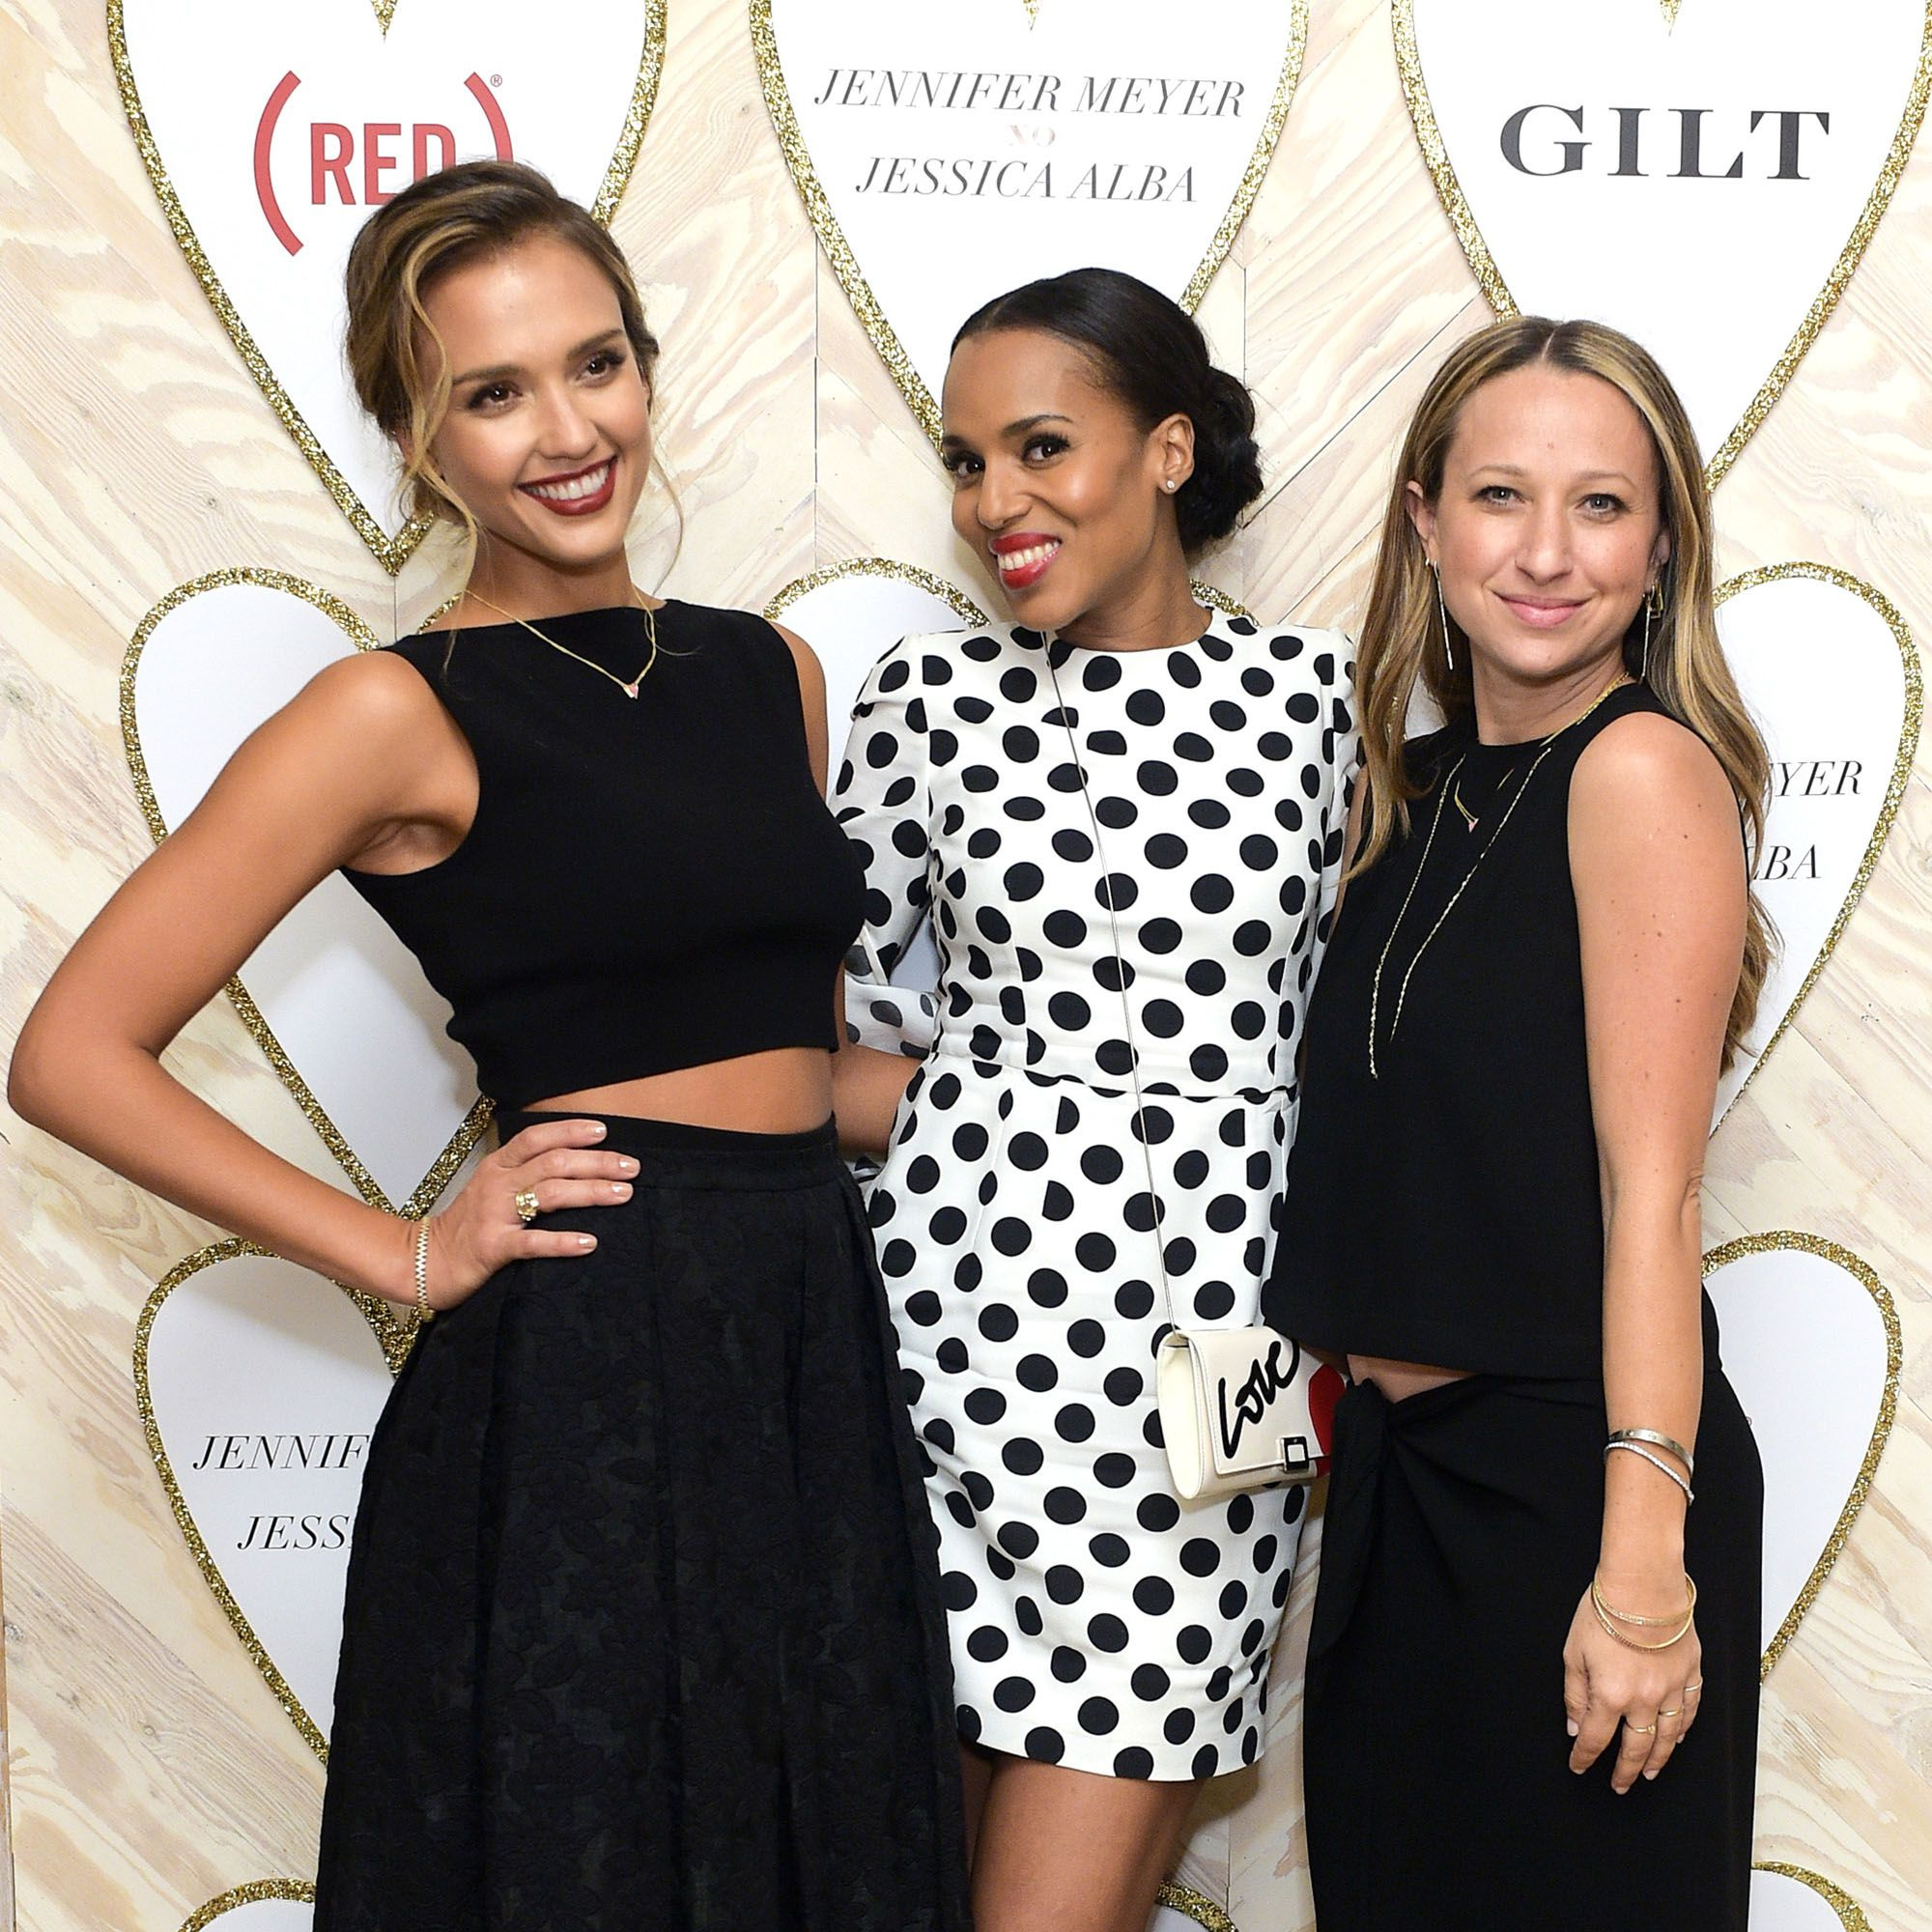 WEST HOLLYWOOD, CA - FEBRUARY 03: Jessica Alba, Kerry Washington and Jennifer Meyer attend Gilt And (RED) Celebrate The Launch Of Jennifer Meyer xo Jessica Alba  at Sunset Tower Hotel on February 3, 2015 in West Hollywood, California. (Photo by Stefanie Keenan/Getty Images for GILT)